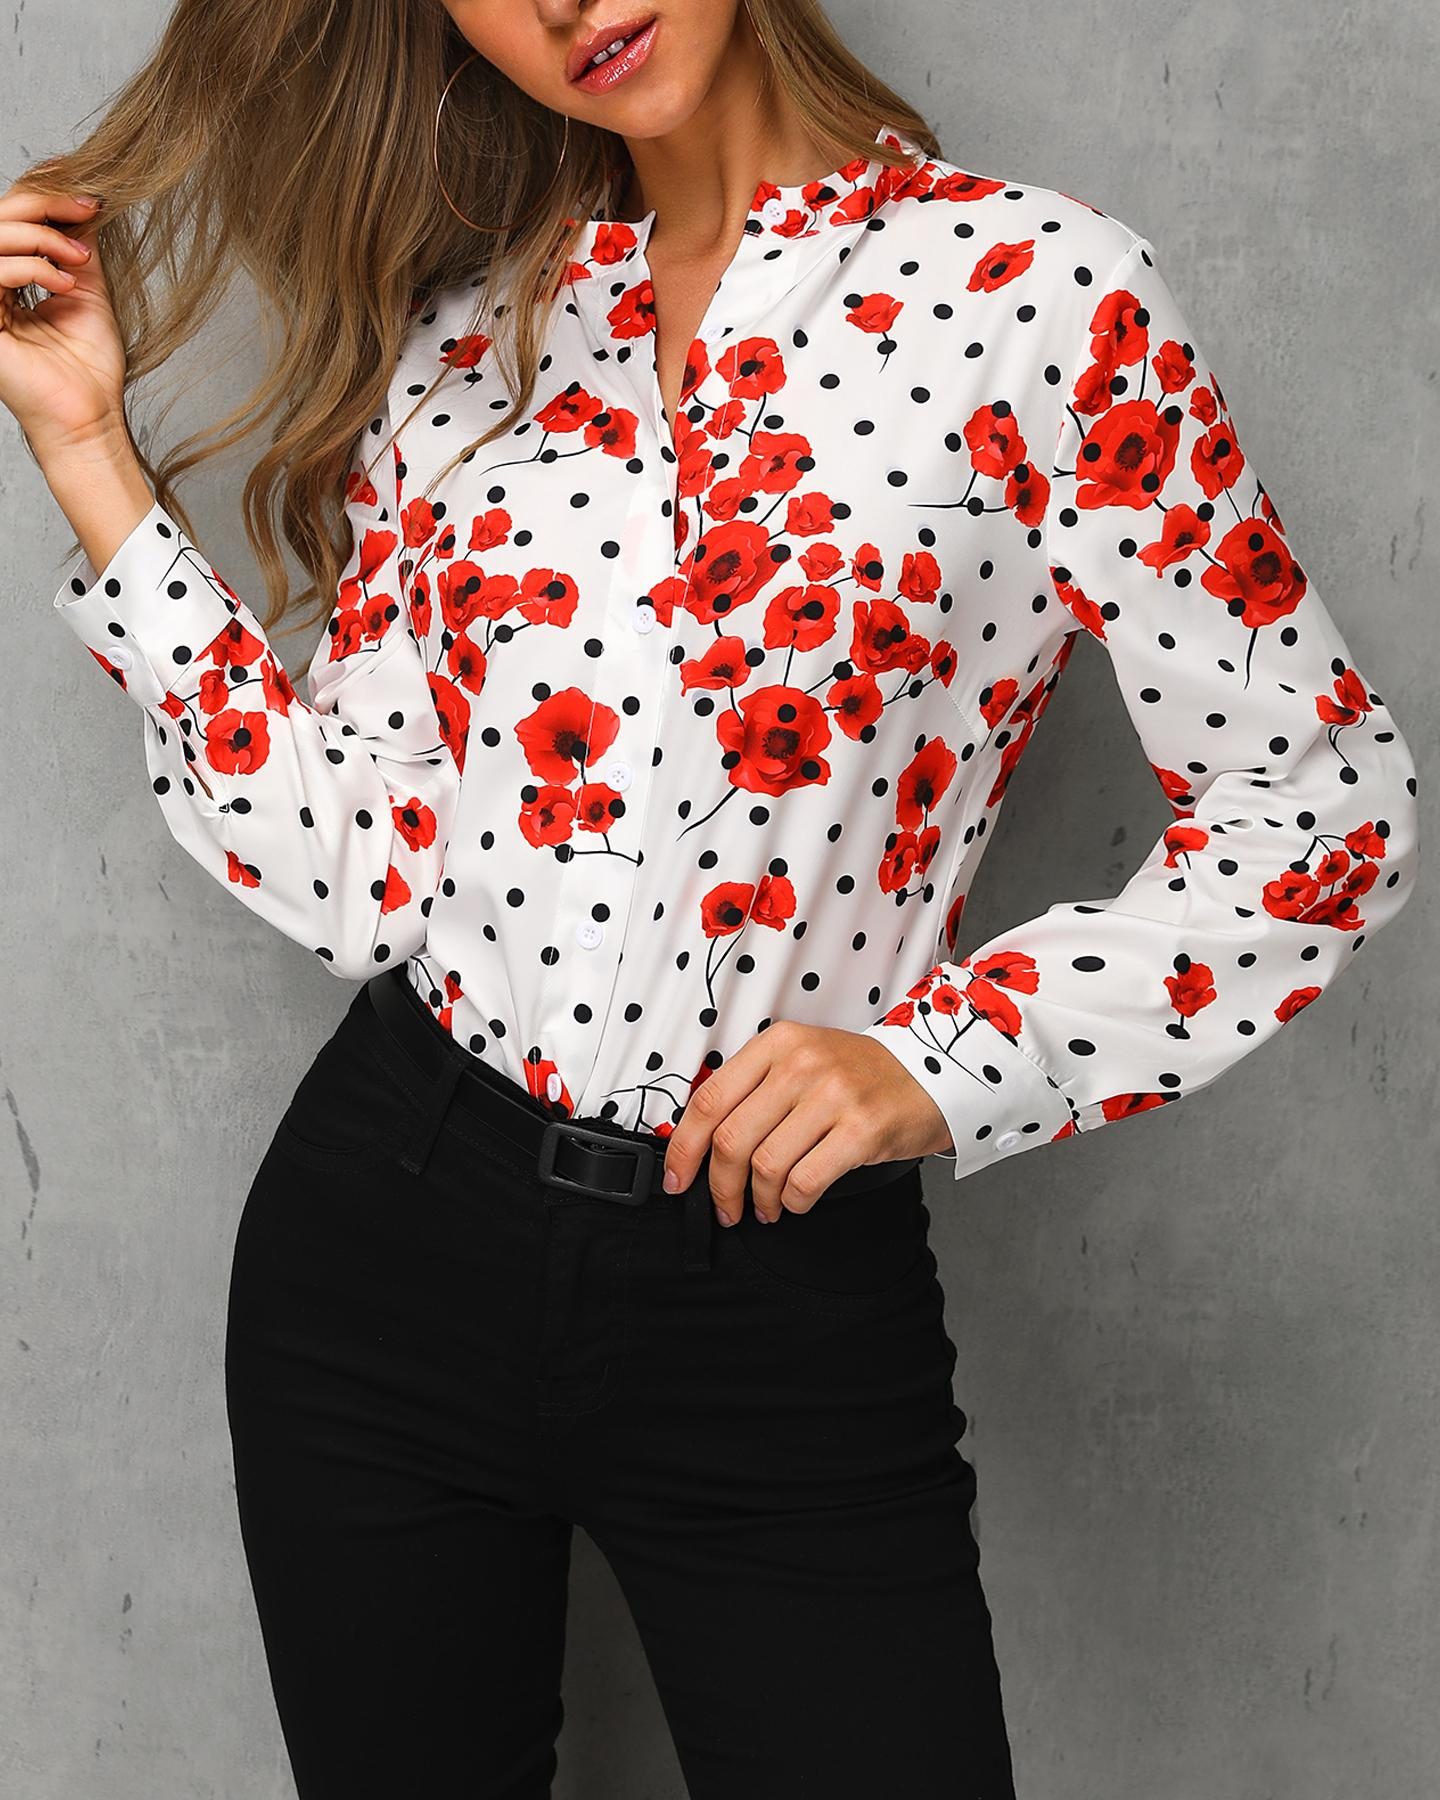 Dot Floral Print Long Sleeve Casual Top